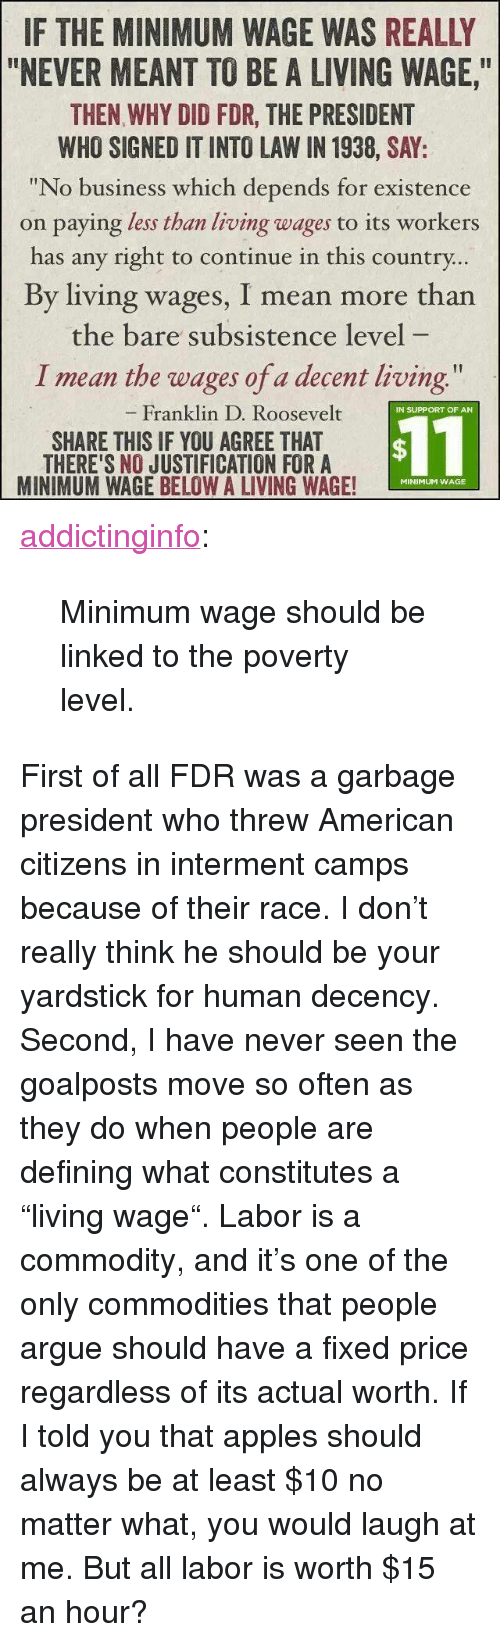 """I Told You That: IF THE MINIMUM WAGE WAS REALLY  """"NEVER MEANT TO BE A LIVING WAGE,  THEN WHY DID FDR, THE PRESIDENT  WHO SIGNED IT INTO LAW IN 1938, SAY:  """"No business which depends for existence  on paying less than living wages to its workers  has any right to continue in this country  By living wages, I mean more than  the bare subsistence level  I mean the wages of a decent living  Franklin D. Roosevelt  IN SUPPORT OF AN  SHARE THIS IF YOU AGREE THAT  THERE'S NO JUSTIFICATION FORA  MINIMUM WAGE BELOW A LIVING WAGE!  $11  MINIMUM WAGE <p><a href=""""http://addictinginfo.tumblr.com/post/83841892544/minimum-wage-should-be-linked-to-the-poverty"""" class=""""tumblr_blog"""">addictinginfo</a>:</p>  <blockquote><p>Minimum wage should be linked to the poverty level.</p></blockquote>  <p>First of all FDR was a garbage president who threw American citizens in interment camps because of their race. I don't really think he should be your yardstick for human decency.</p><p>Second, I have never seen the goalposts move so often as they do when people are defining what constitutes a """"living wage"""". Labor is a commodity, and it's one of the only commodities that people argue should have a fixed price regardless of its actual worth. If I told you that apples should always be at least $10 no matter what, you would laugh at me. But all labor is worth $15 an hour?</p>"""